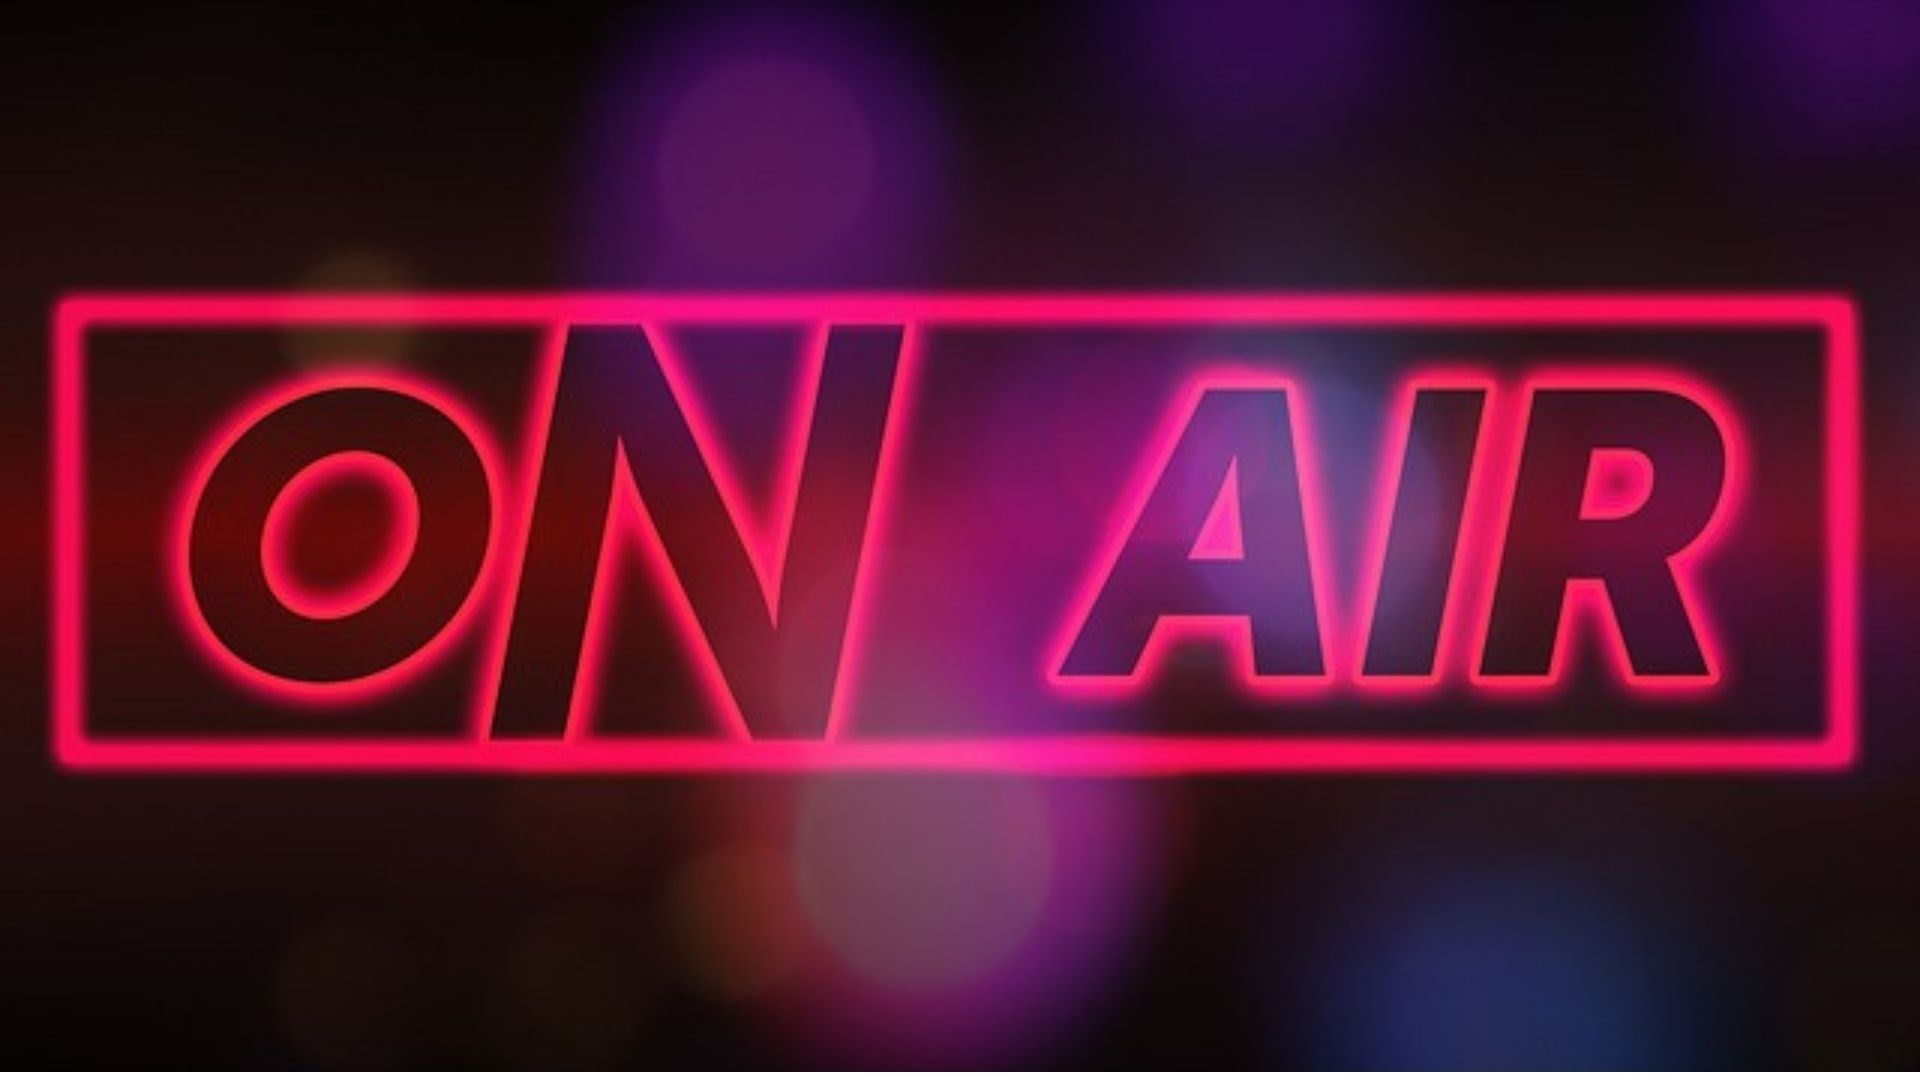 Start Your Own Podcast - On Air Sign